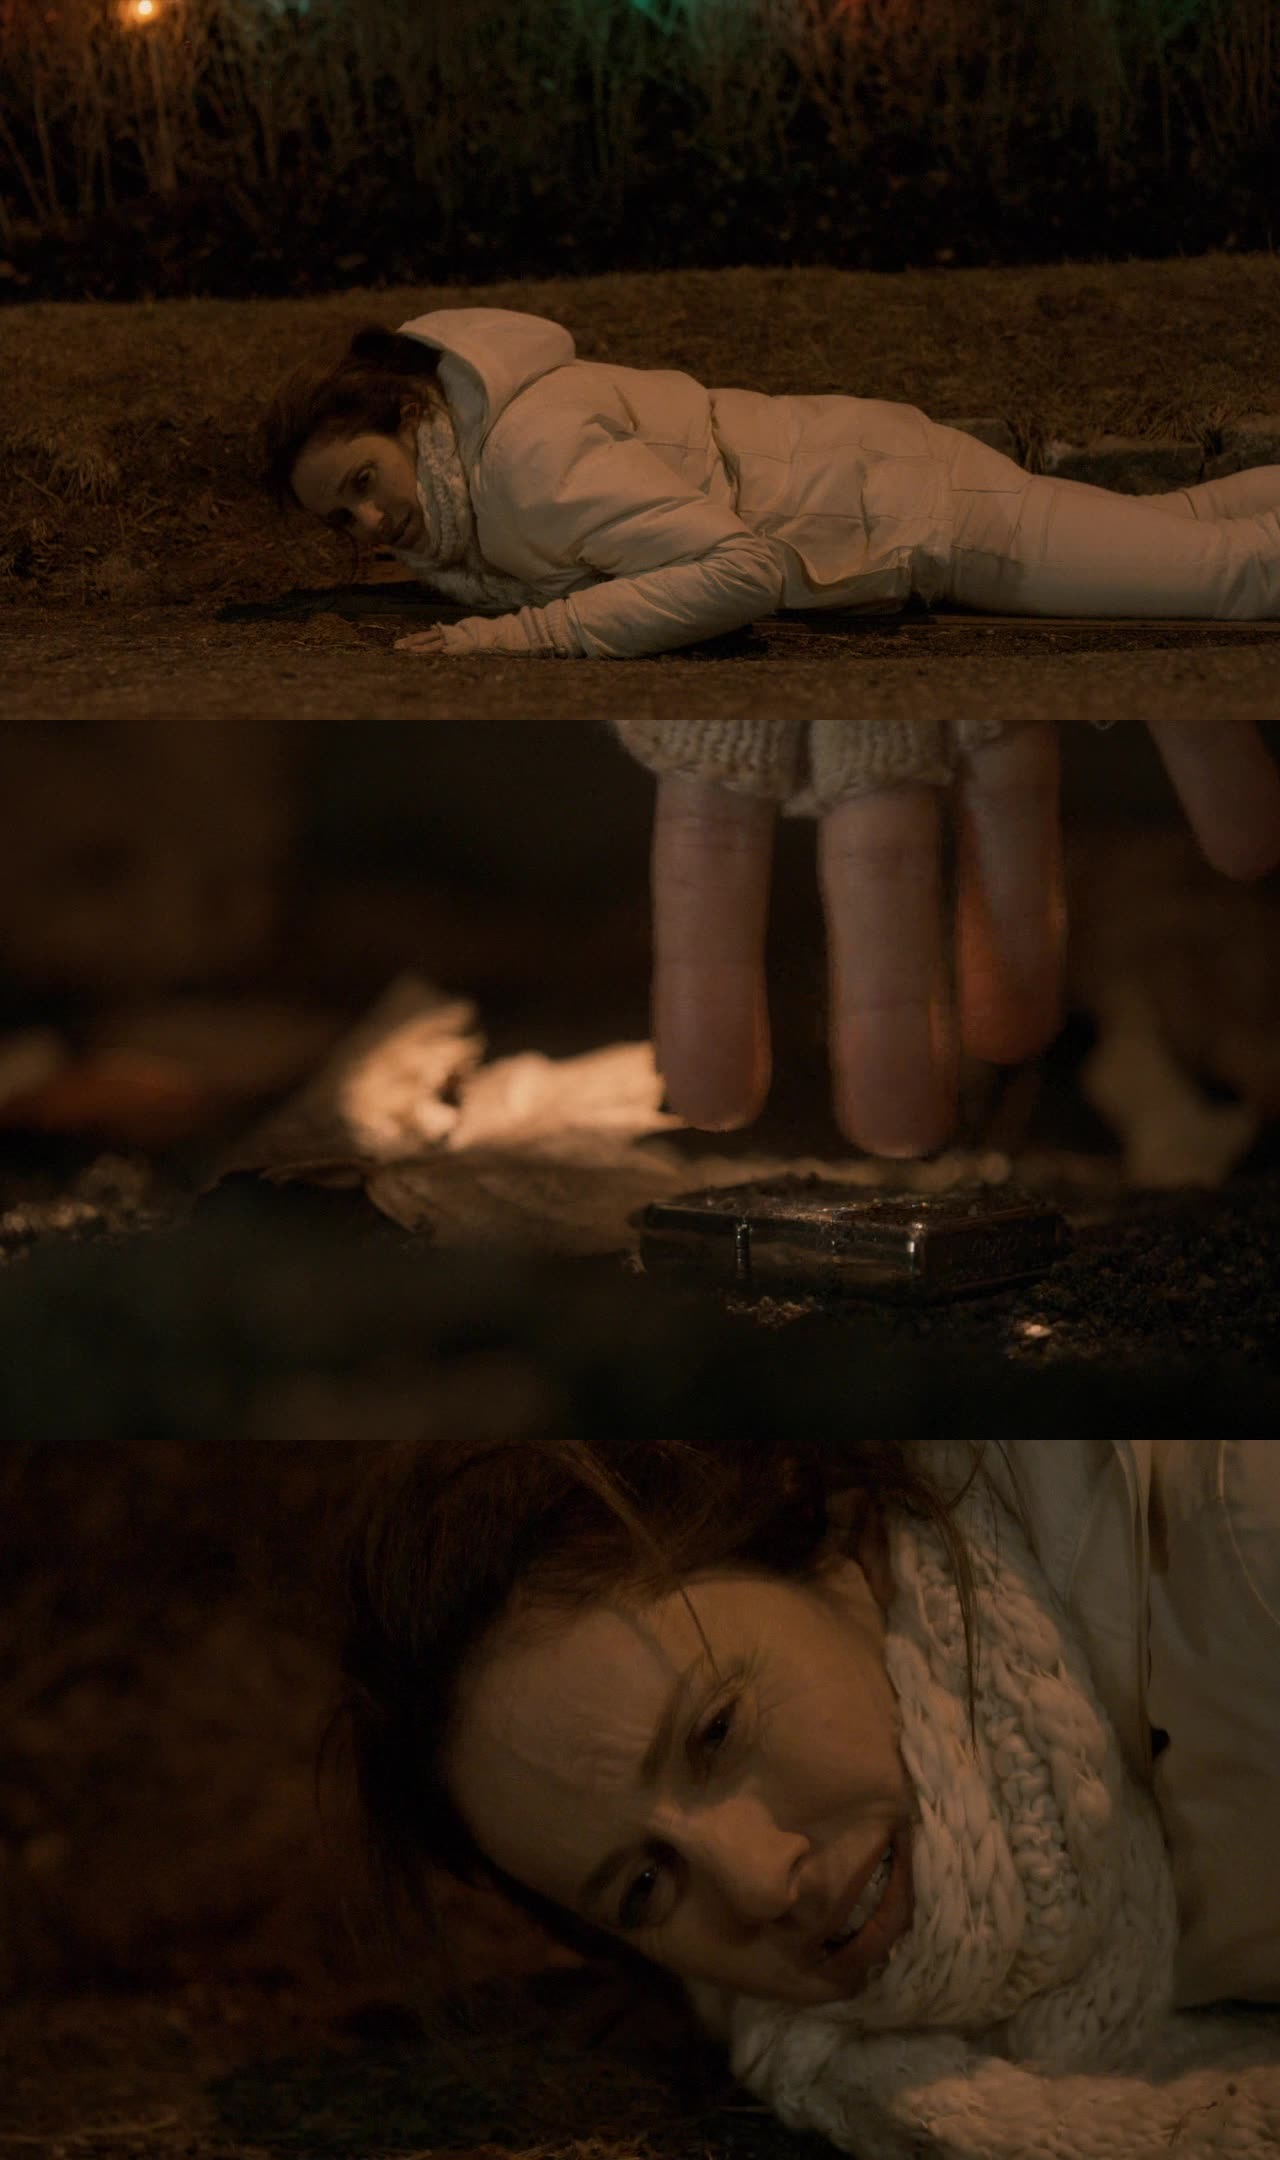 So sad and beautiful scene at the some time. She longed to recover the detail that her daughter gifted her and that was the last thing that connected with her. WOW ????